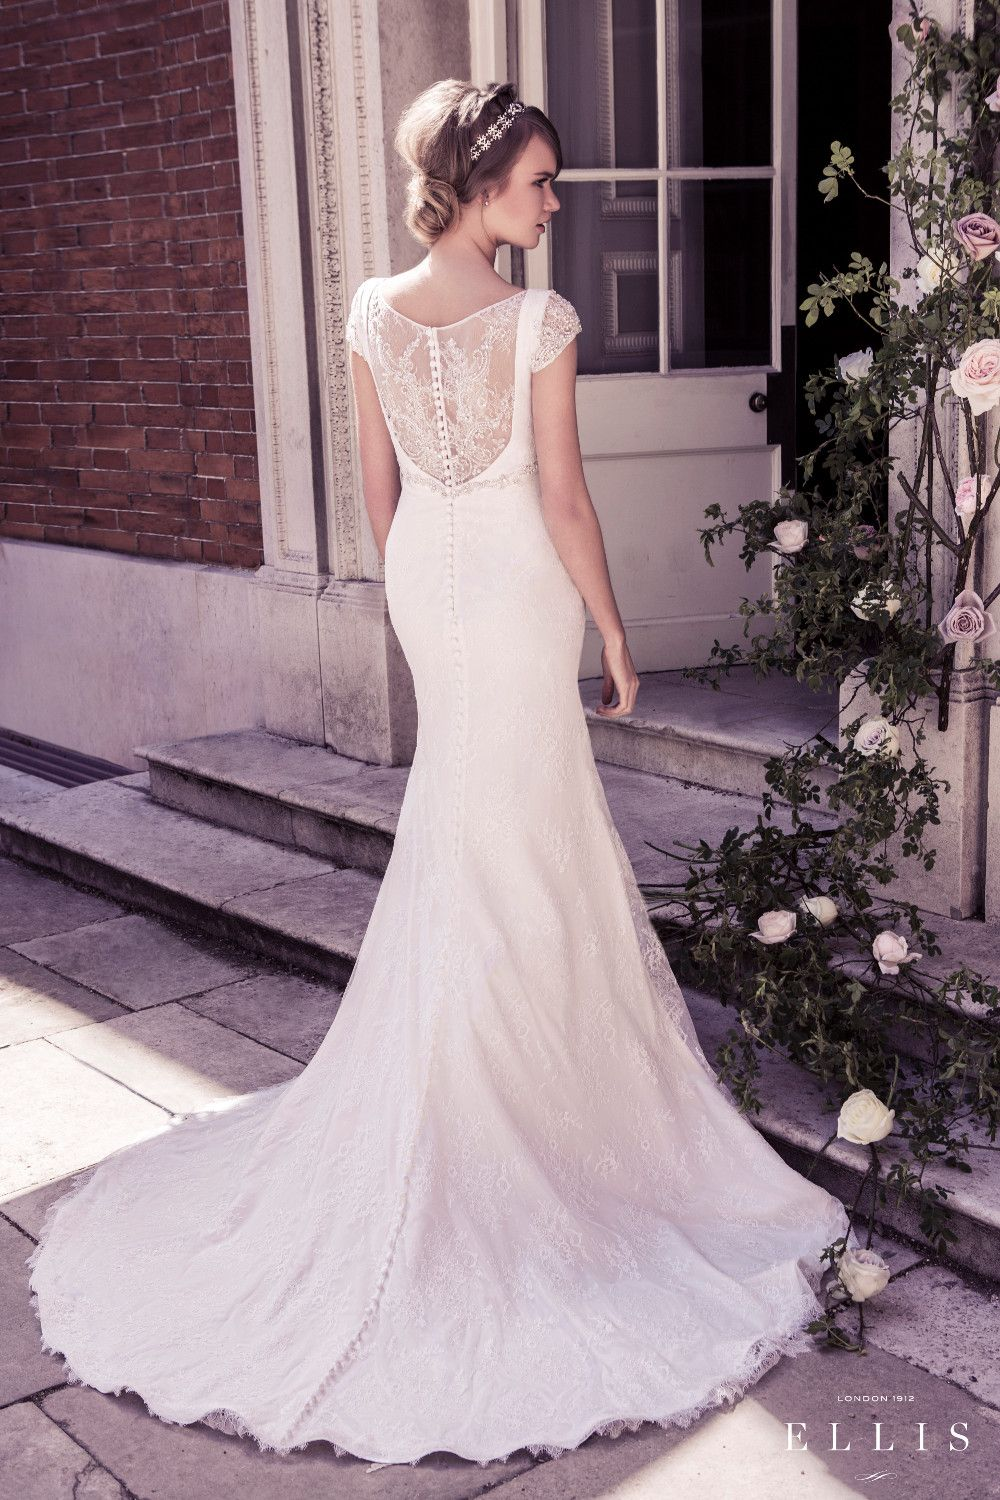 The bridal outlet ireland bridal wear dublin bridal shop in the bridal outlet ireland bridal wear dublin bridal shop in dublin ombrellifo Image collections